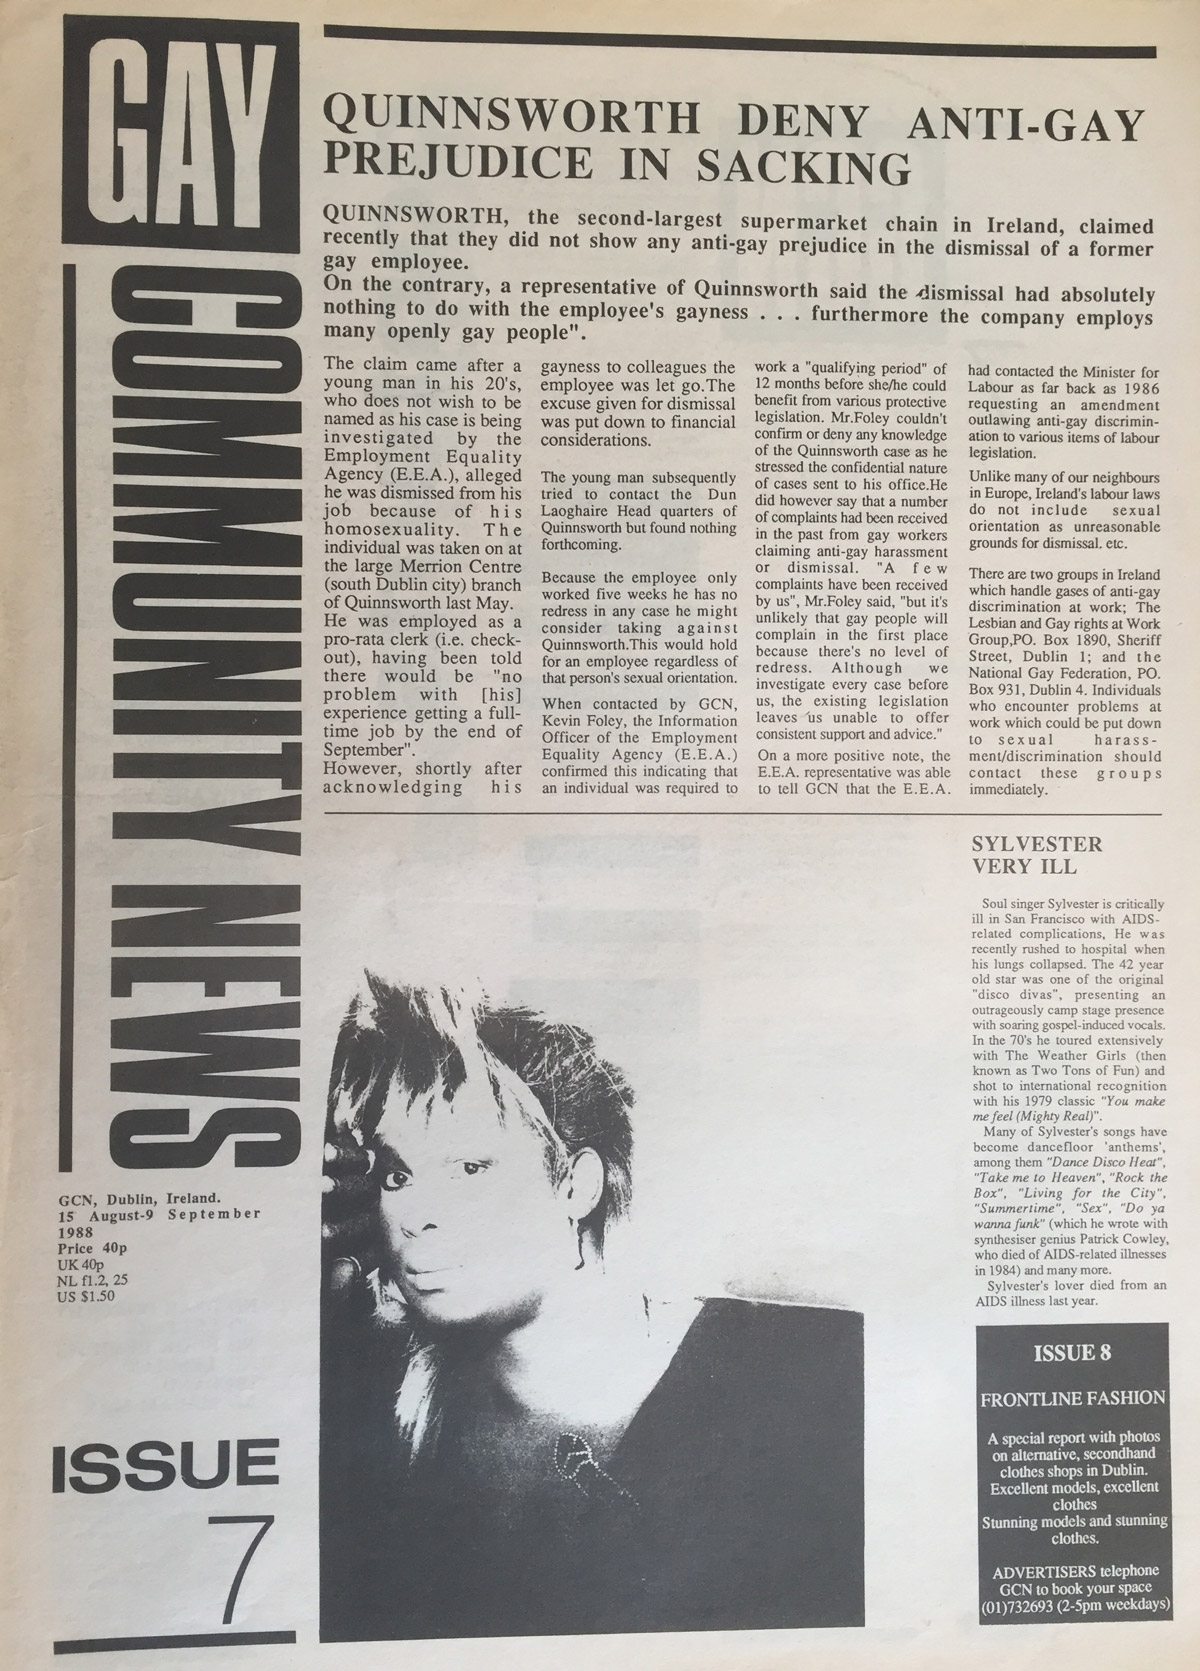 The 1988 Issue in the Evolution of GCN, Ireland's National LGBT Publication with images and words on the cover